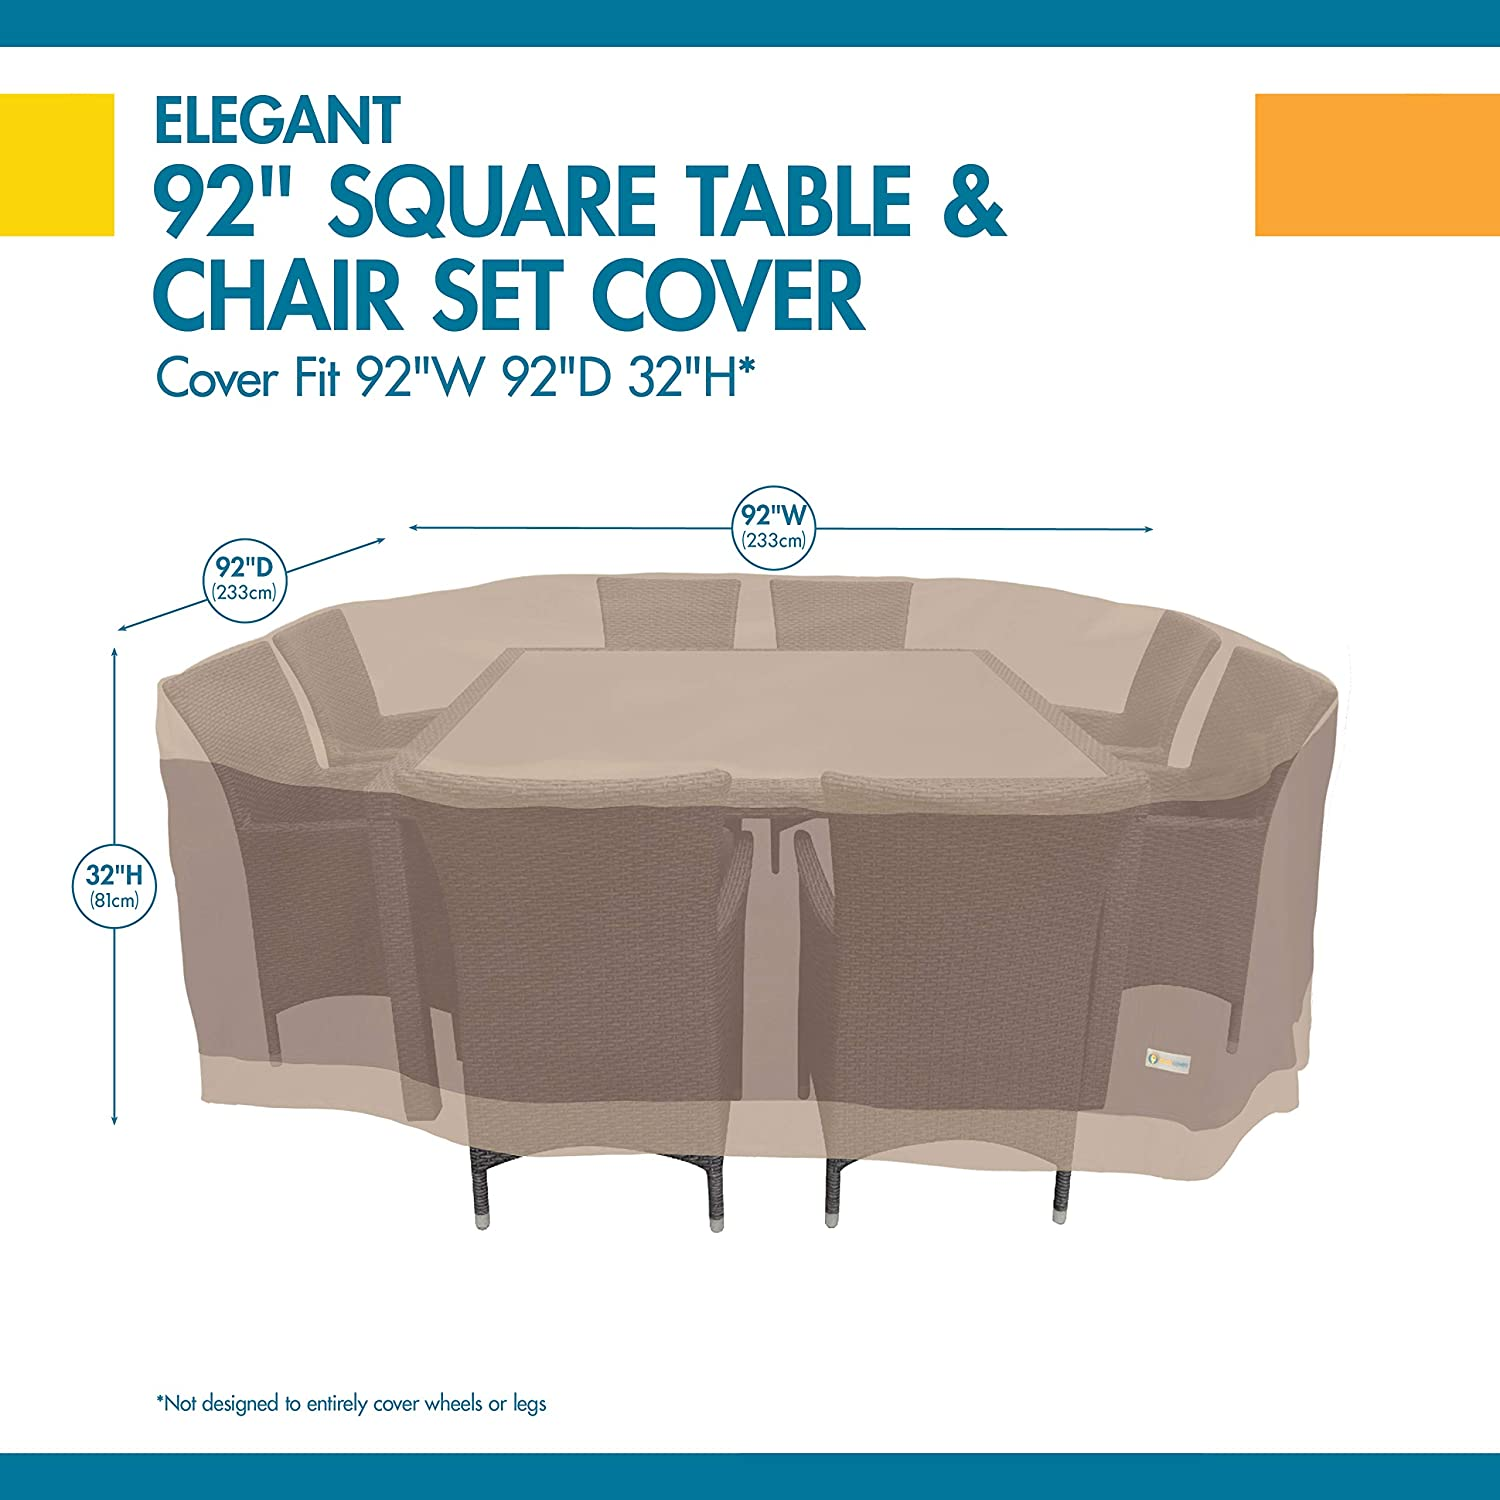 Duck Covers Elegant Water-Resistant 92 Inch Square Patio Table /& Chair Set Cover